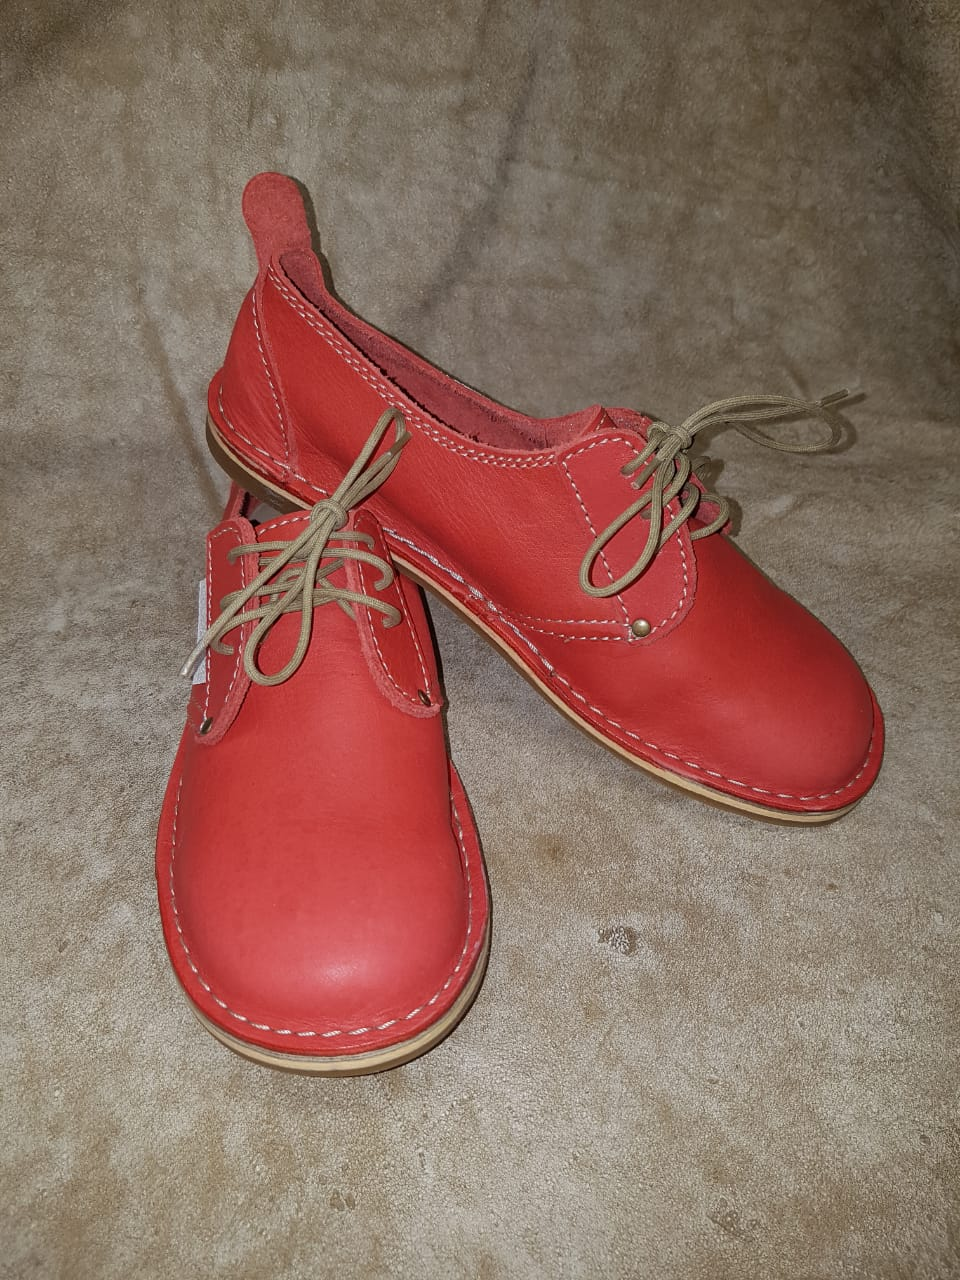 l45a--vellies-texas-red